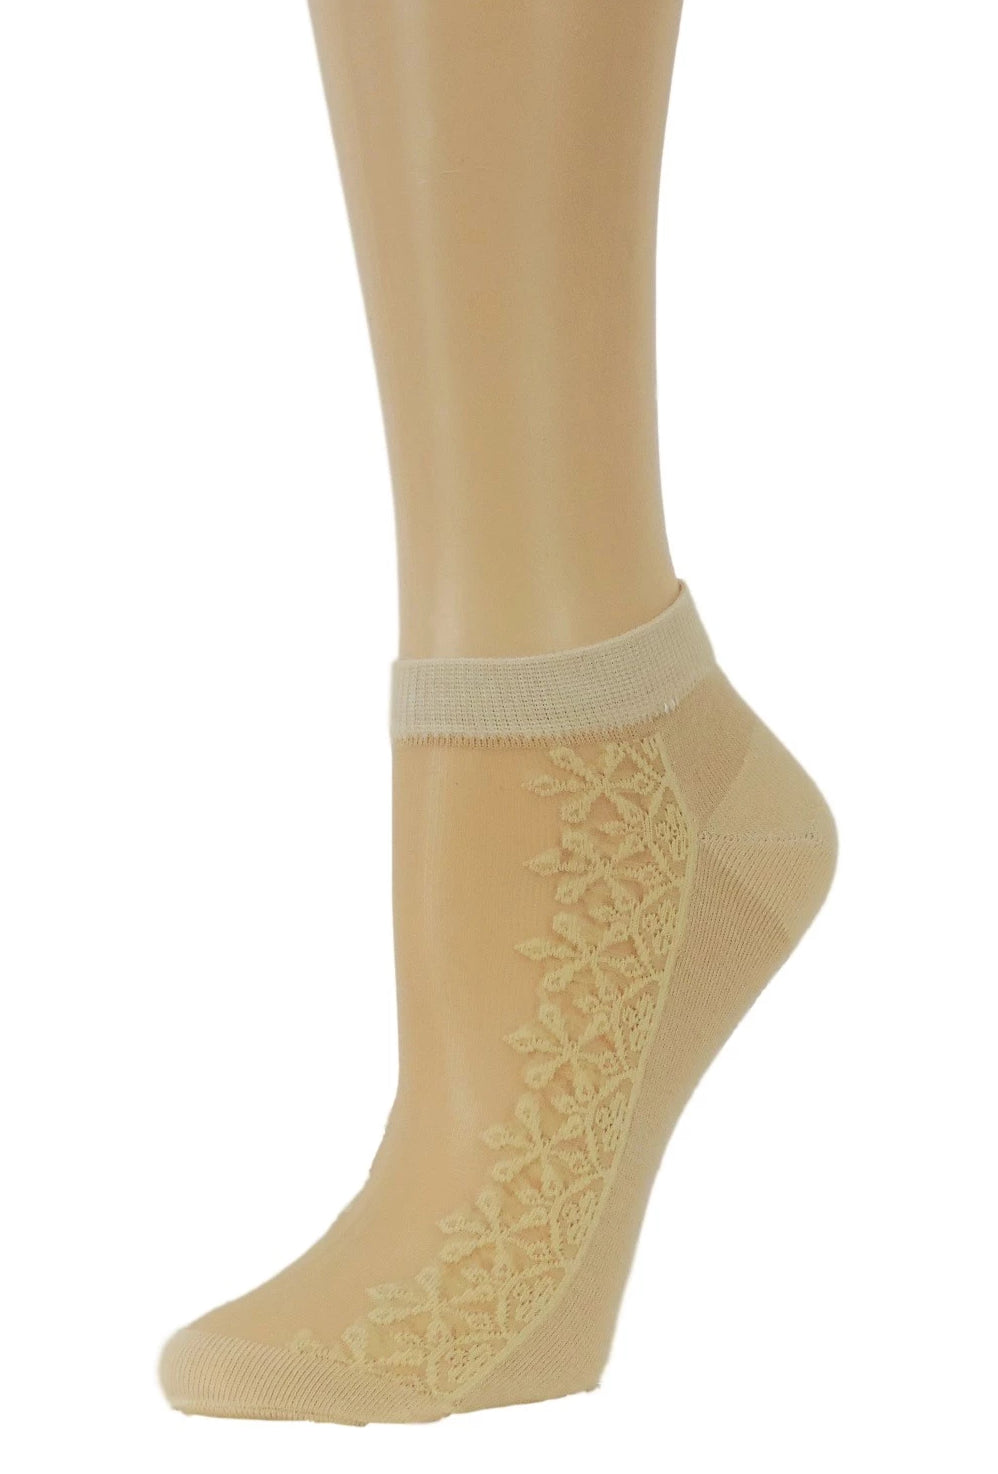 Sequence Floral Ankle Sheer Socks